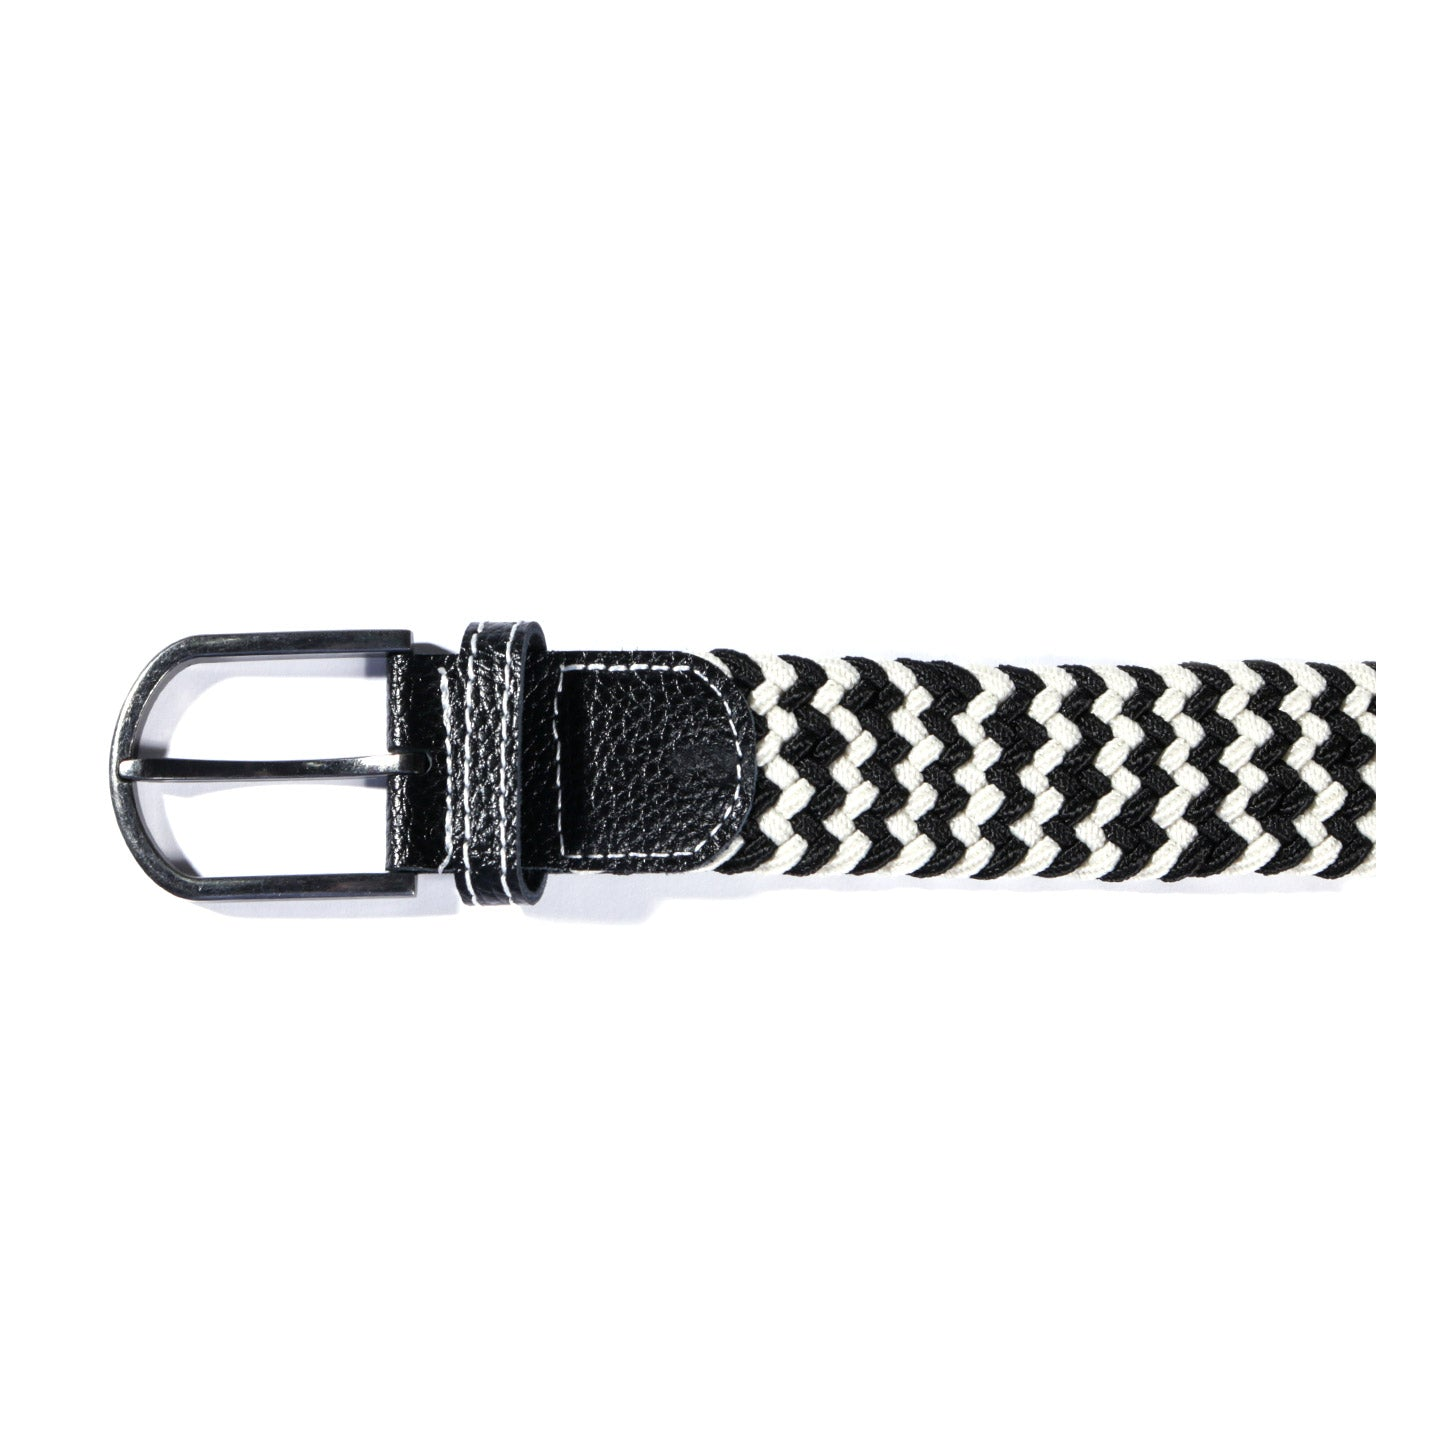 NEIGHBORHOOD BRAID BELT BLACK